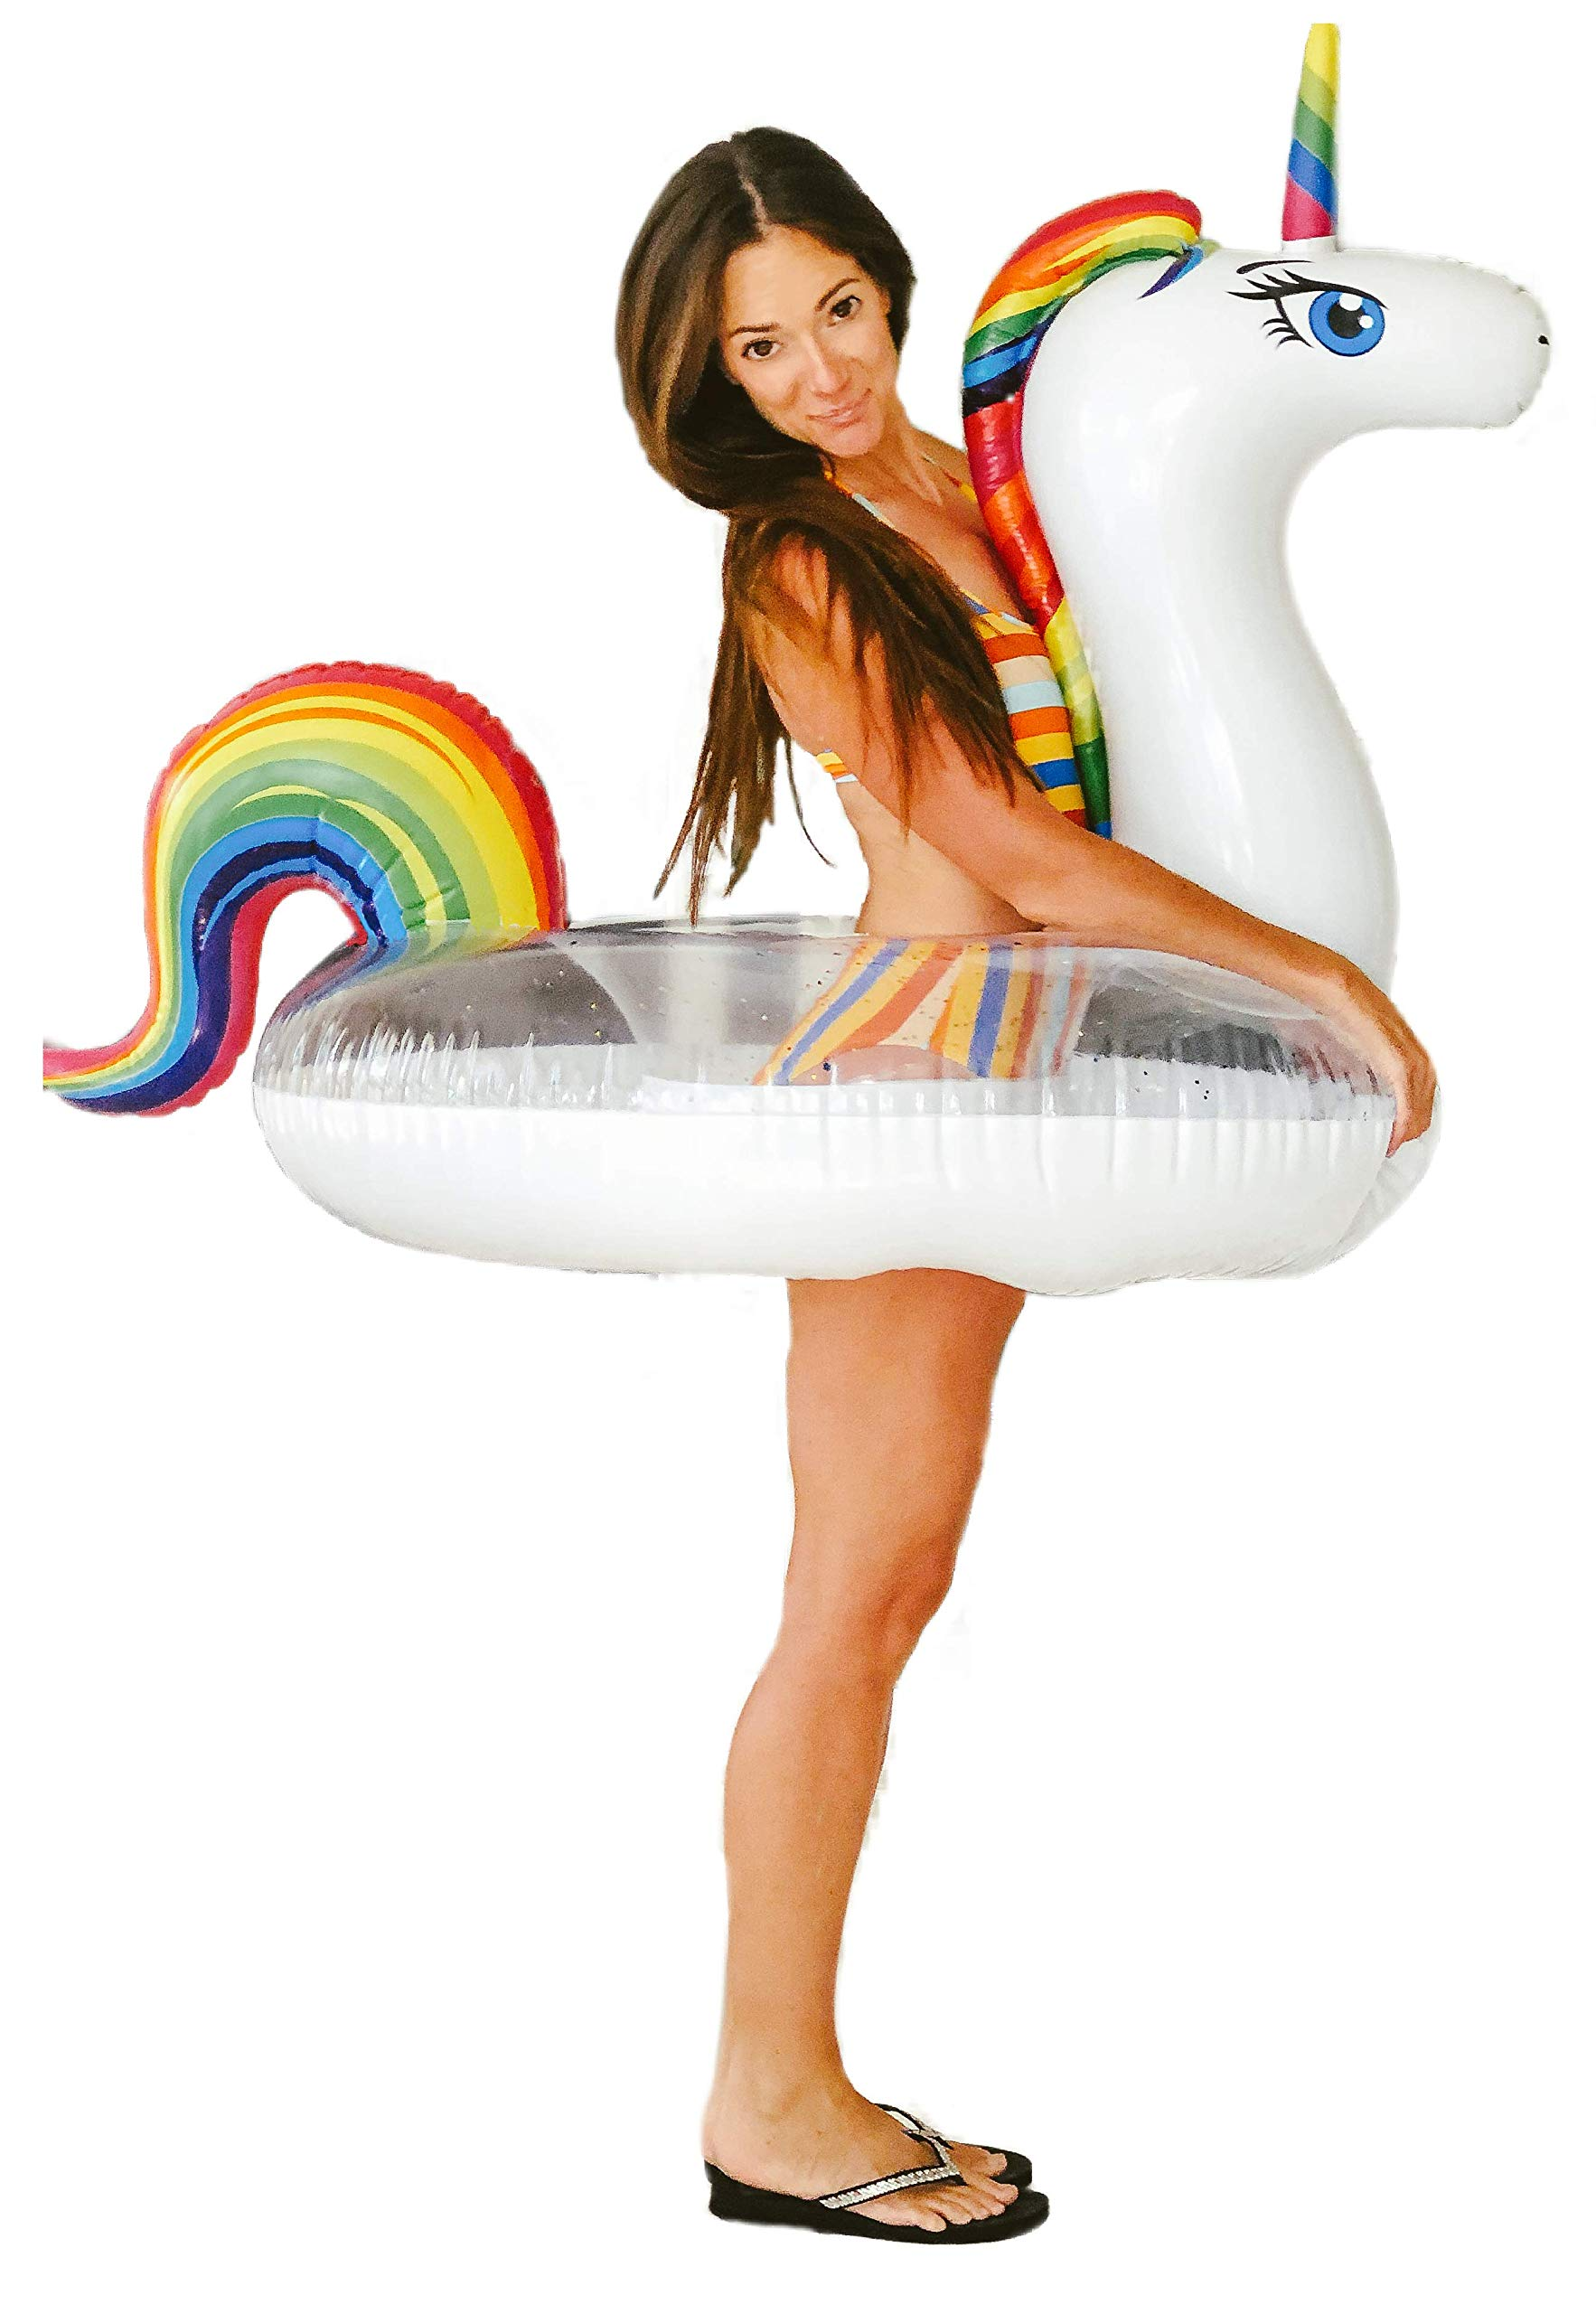 Unicorn Pool Floats for Kids - Glitter Filled - Ride ON Inflatable Unicorn Float for Pool Lake River RAFT - Giant… 3